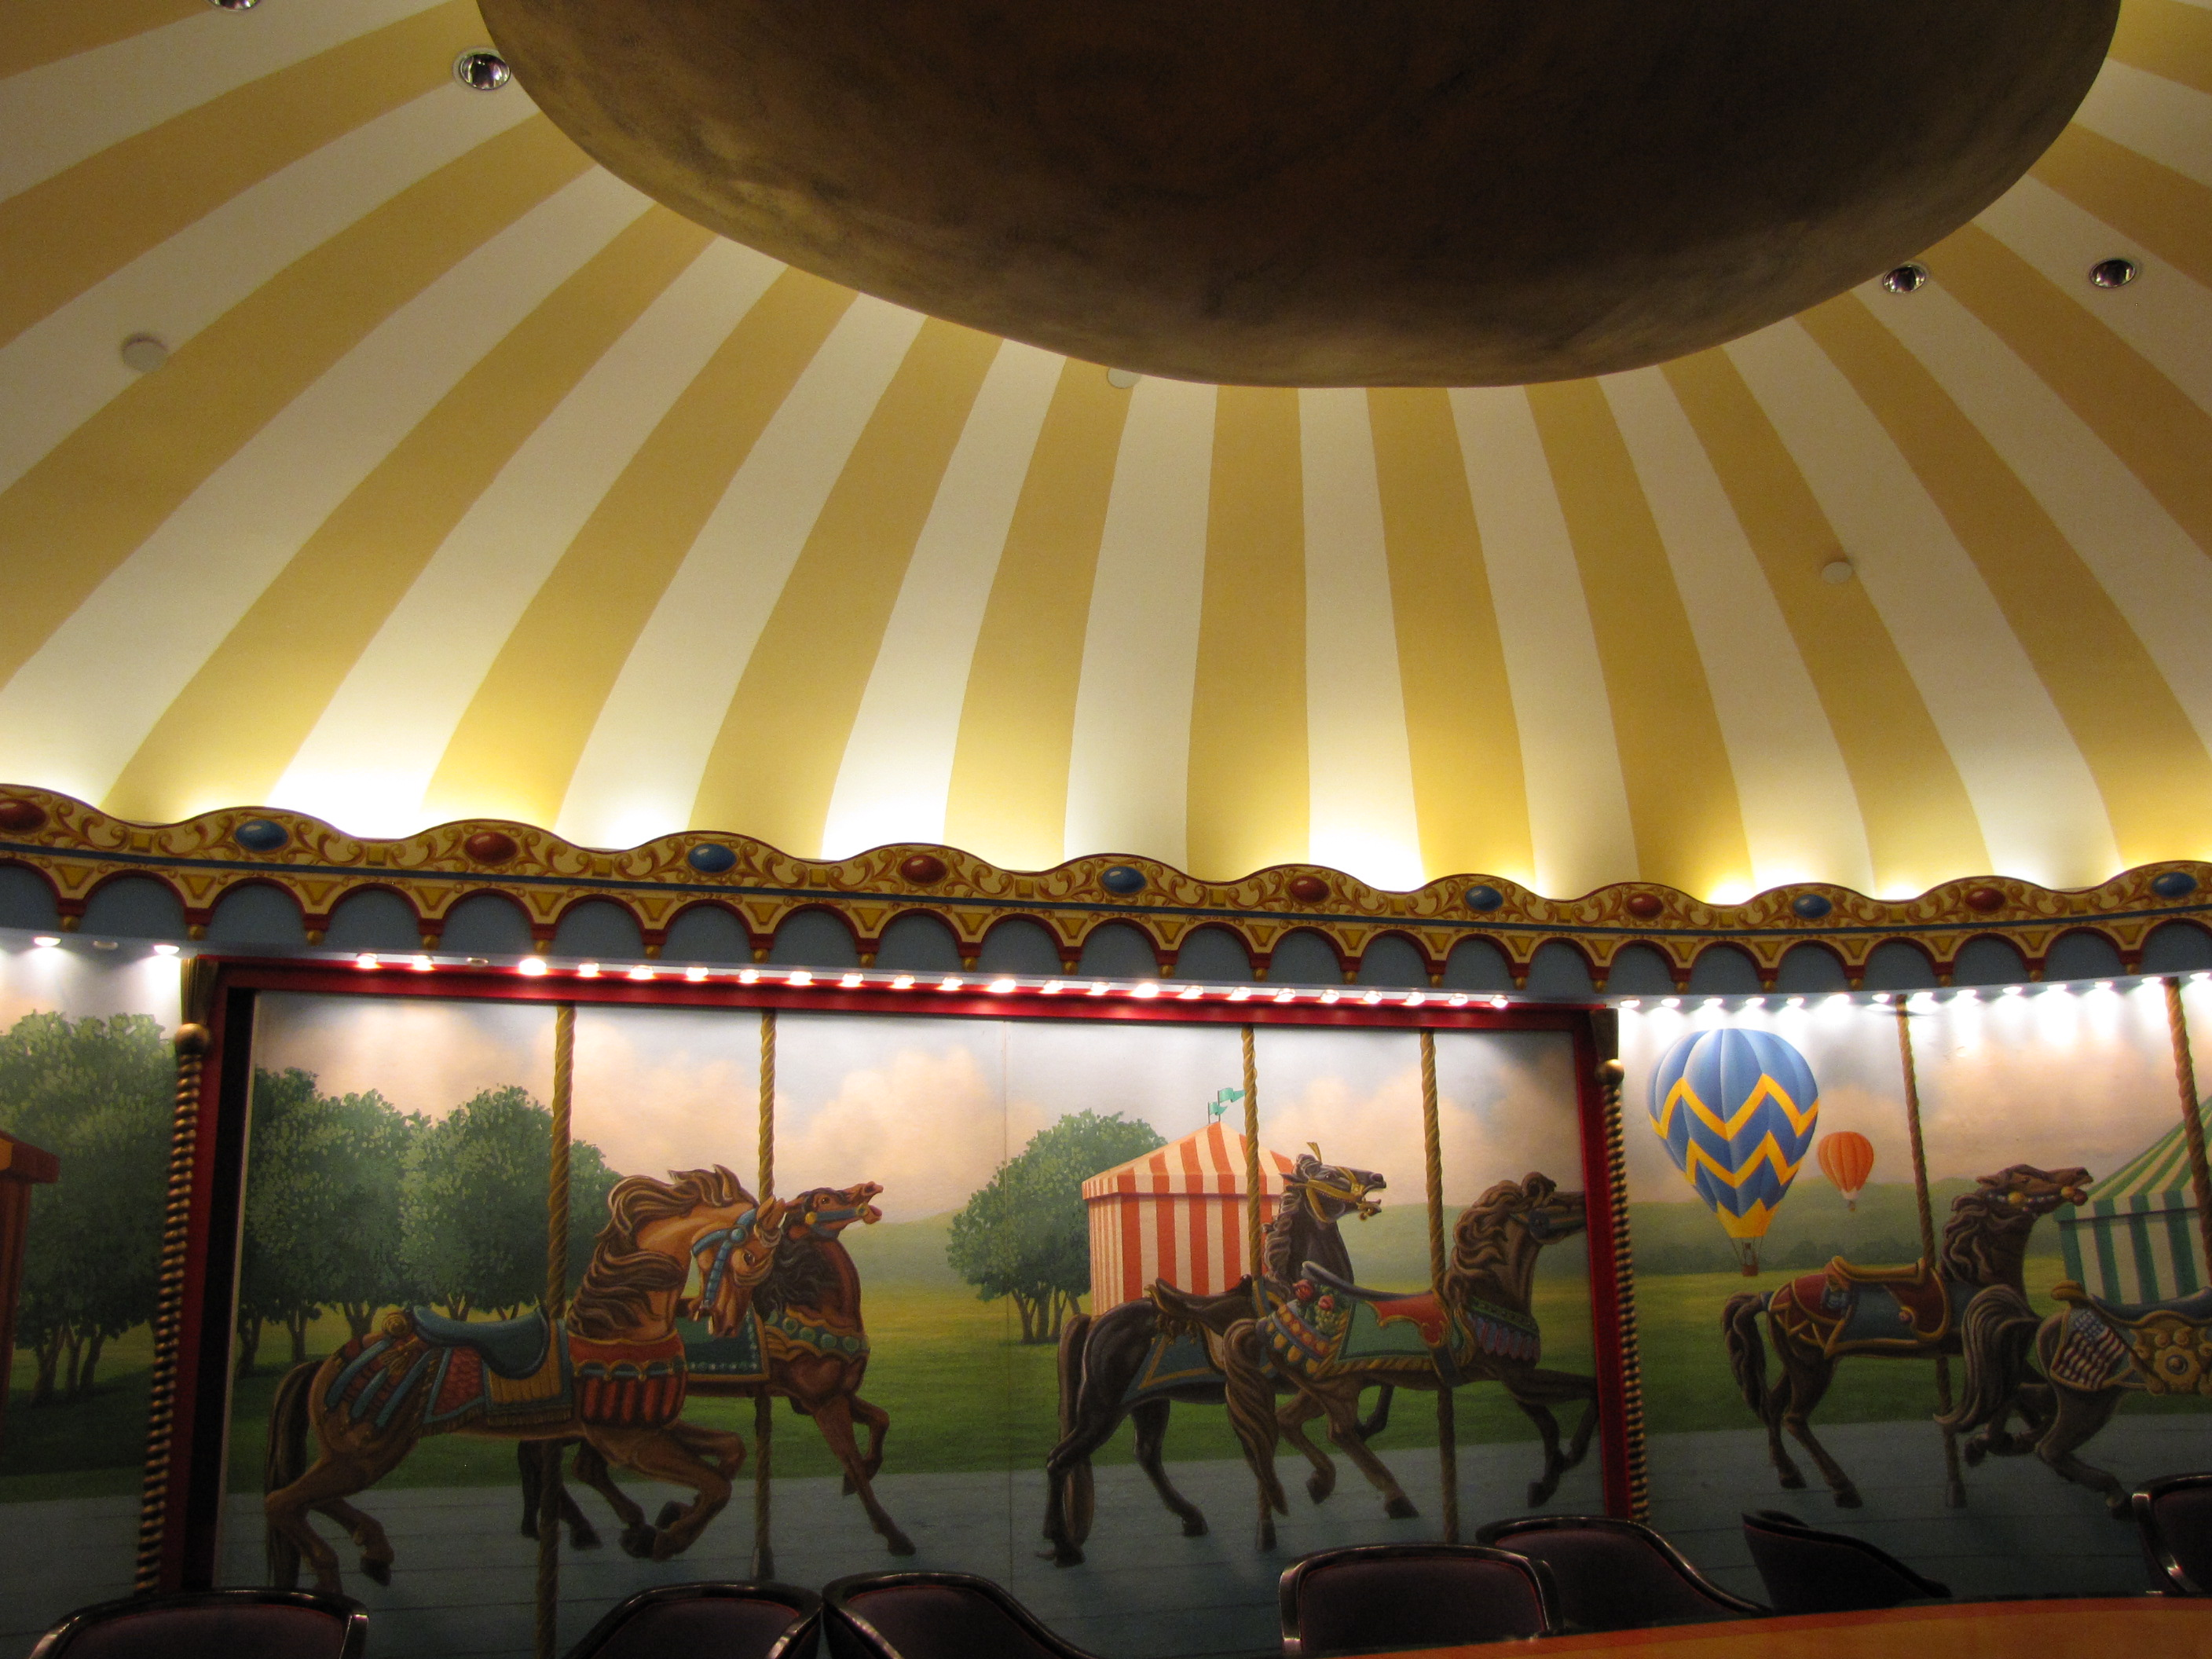 "Kingdom Keepers ""Mary Poppins Lounge"" at Disney Revealed-The Carousel Room"